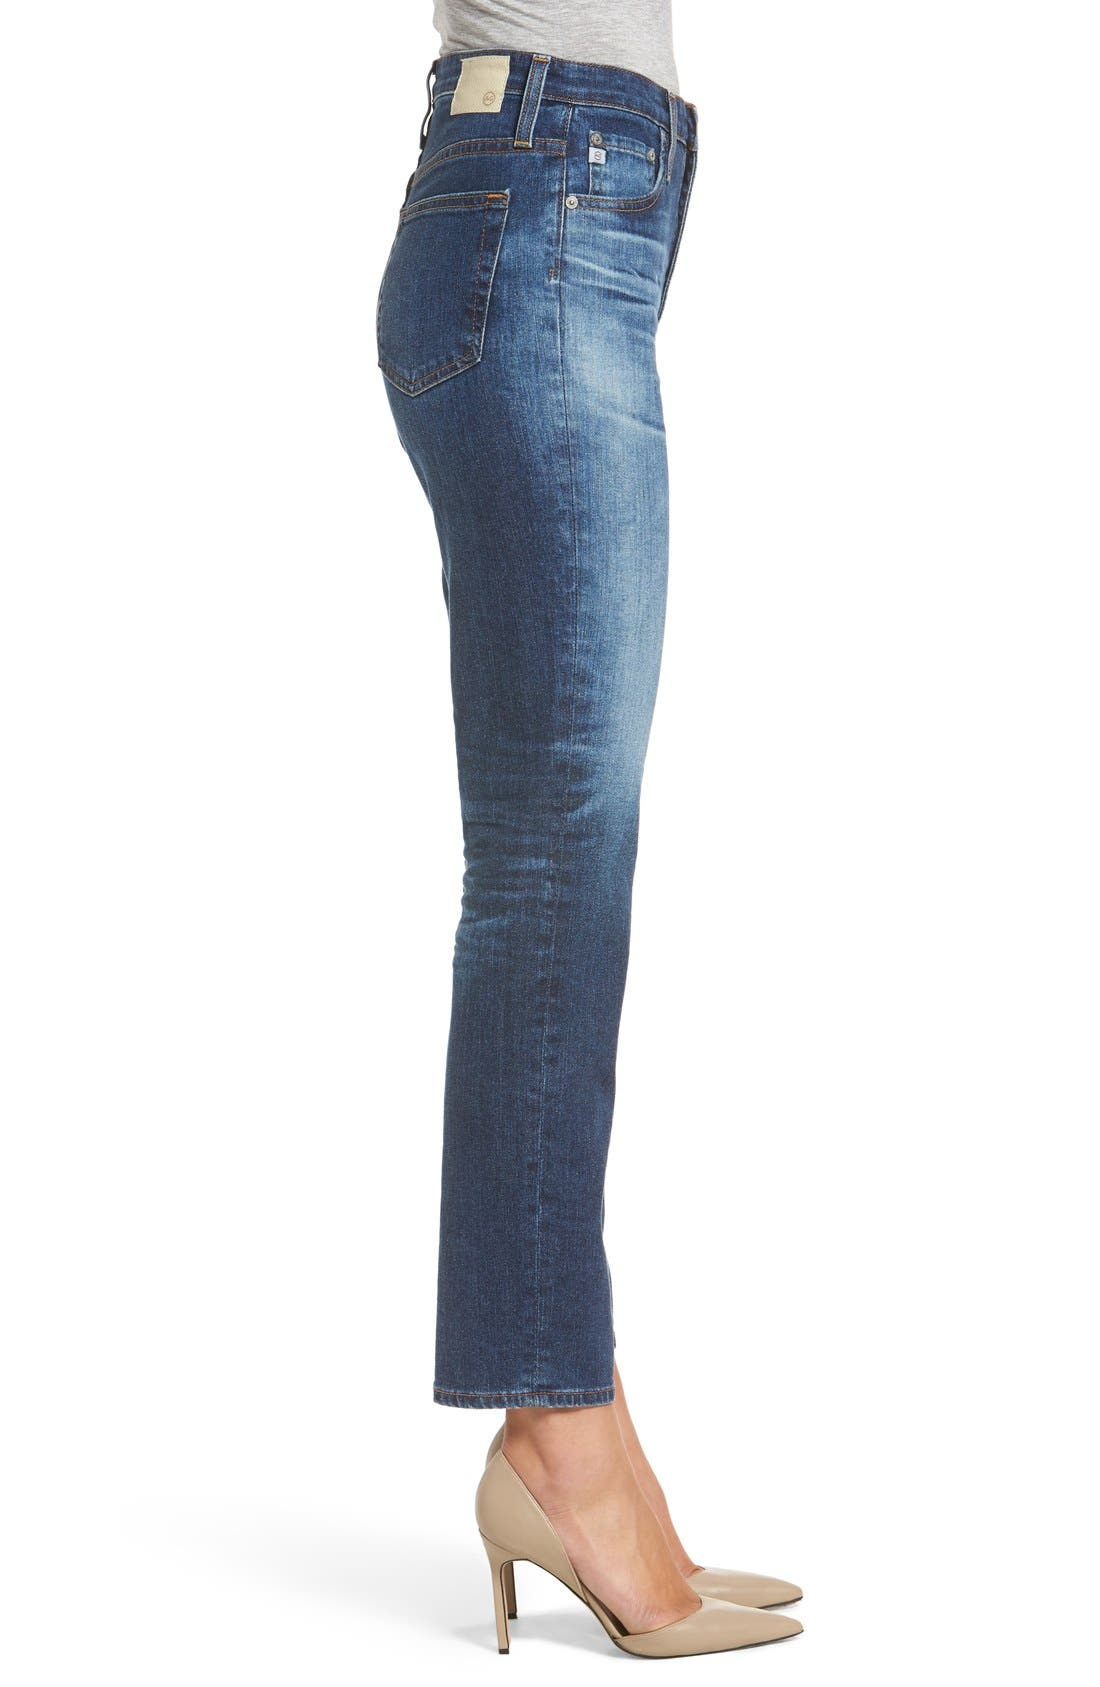 'The Phoebe' Vintage High Rise Straight Leg Jeans,                             Alternate thumbnail 3, color,                             10Y Wick